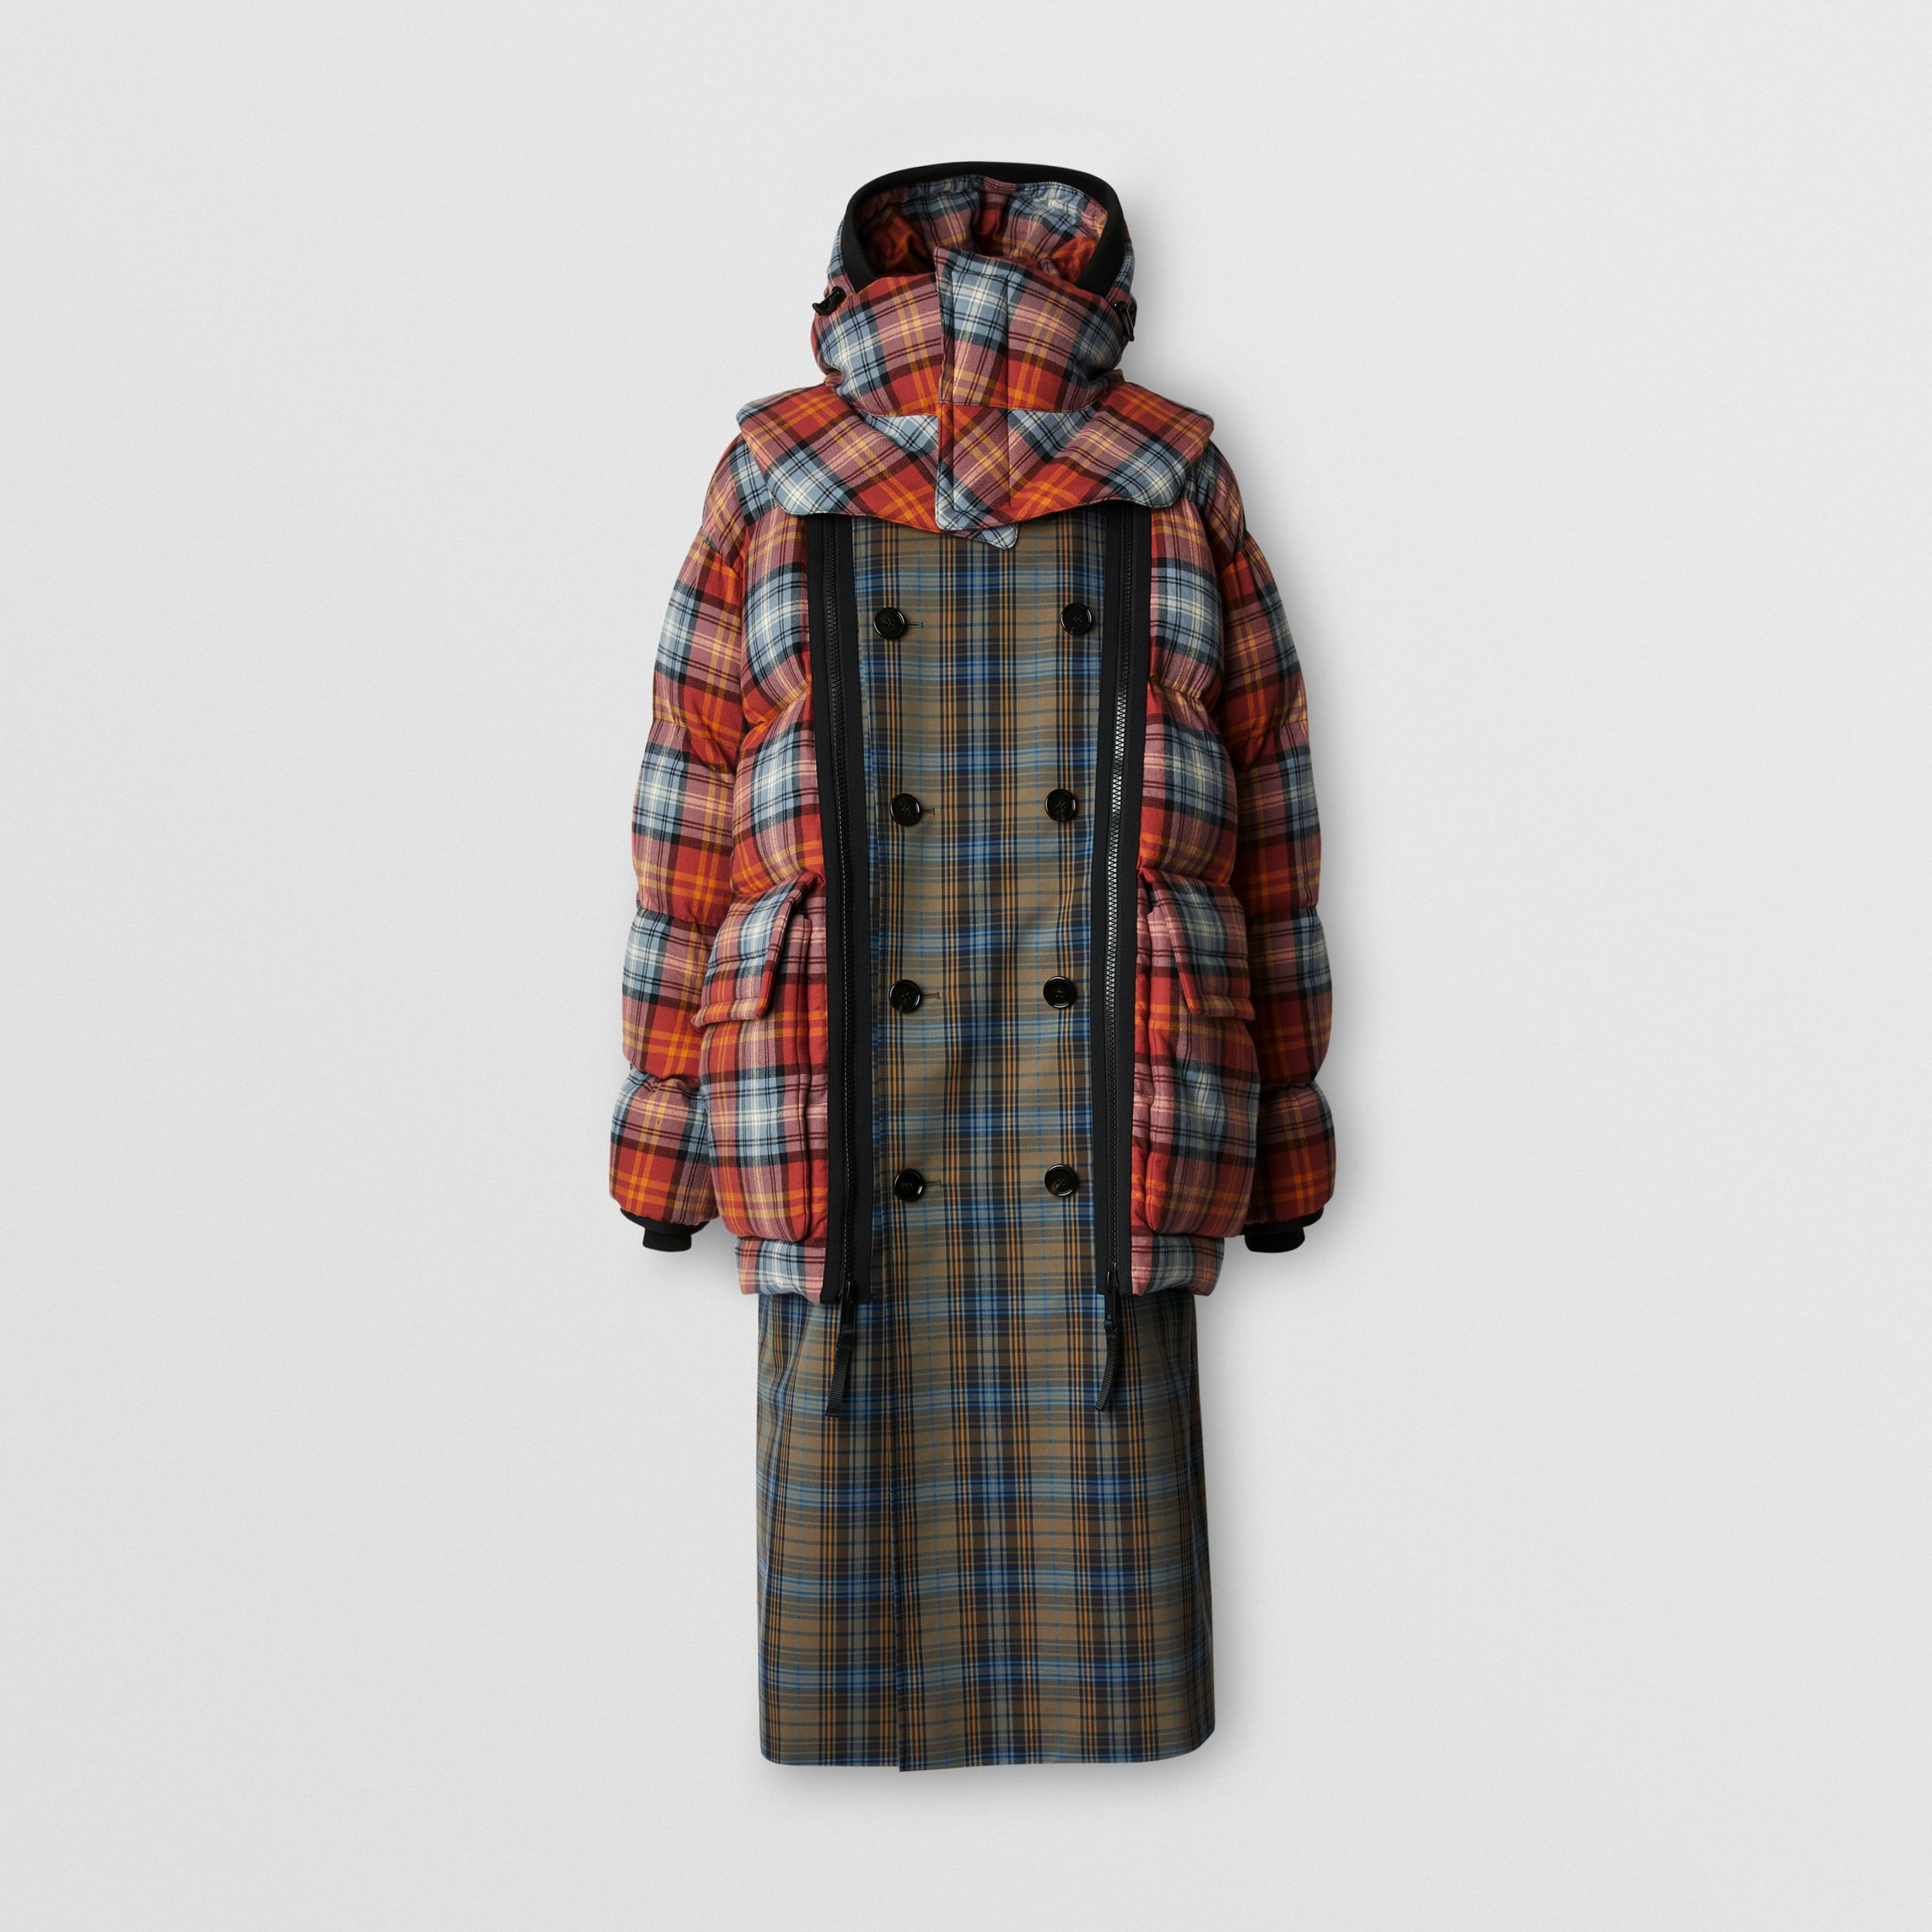 Sleeveless Check Trench Coat With Detachable Puffer in Multicolour - Men | Burberry - 4